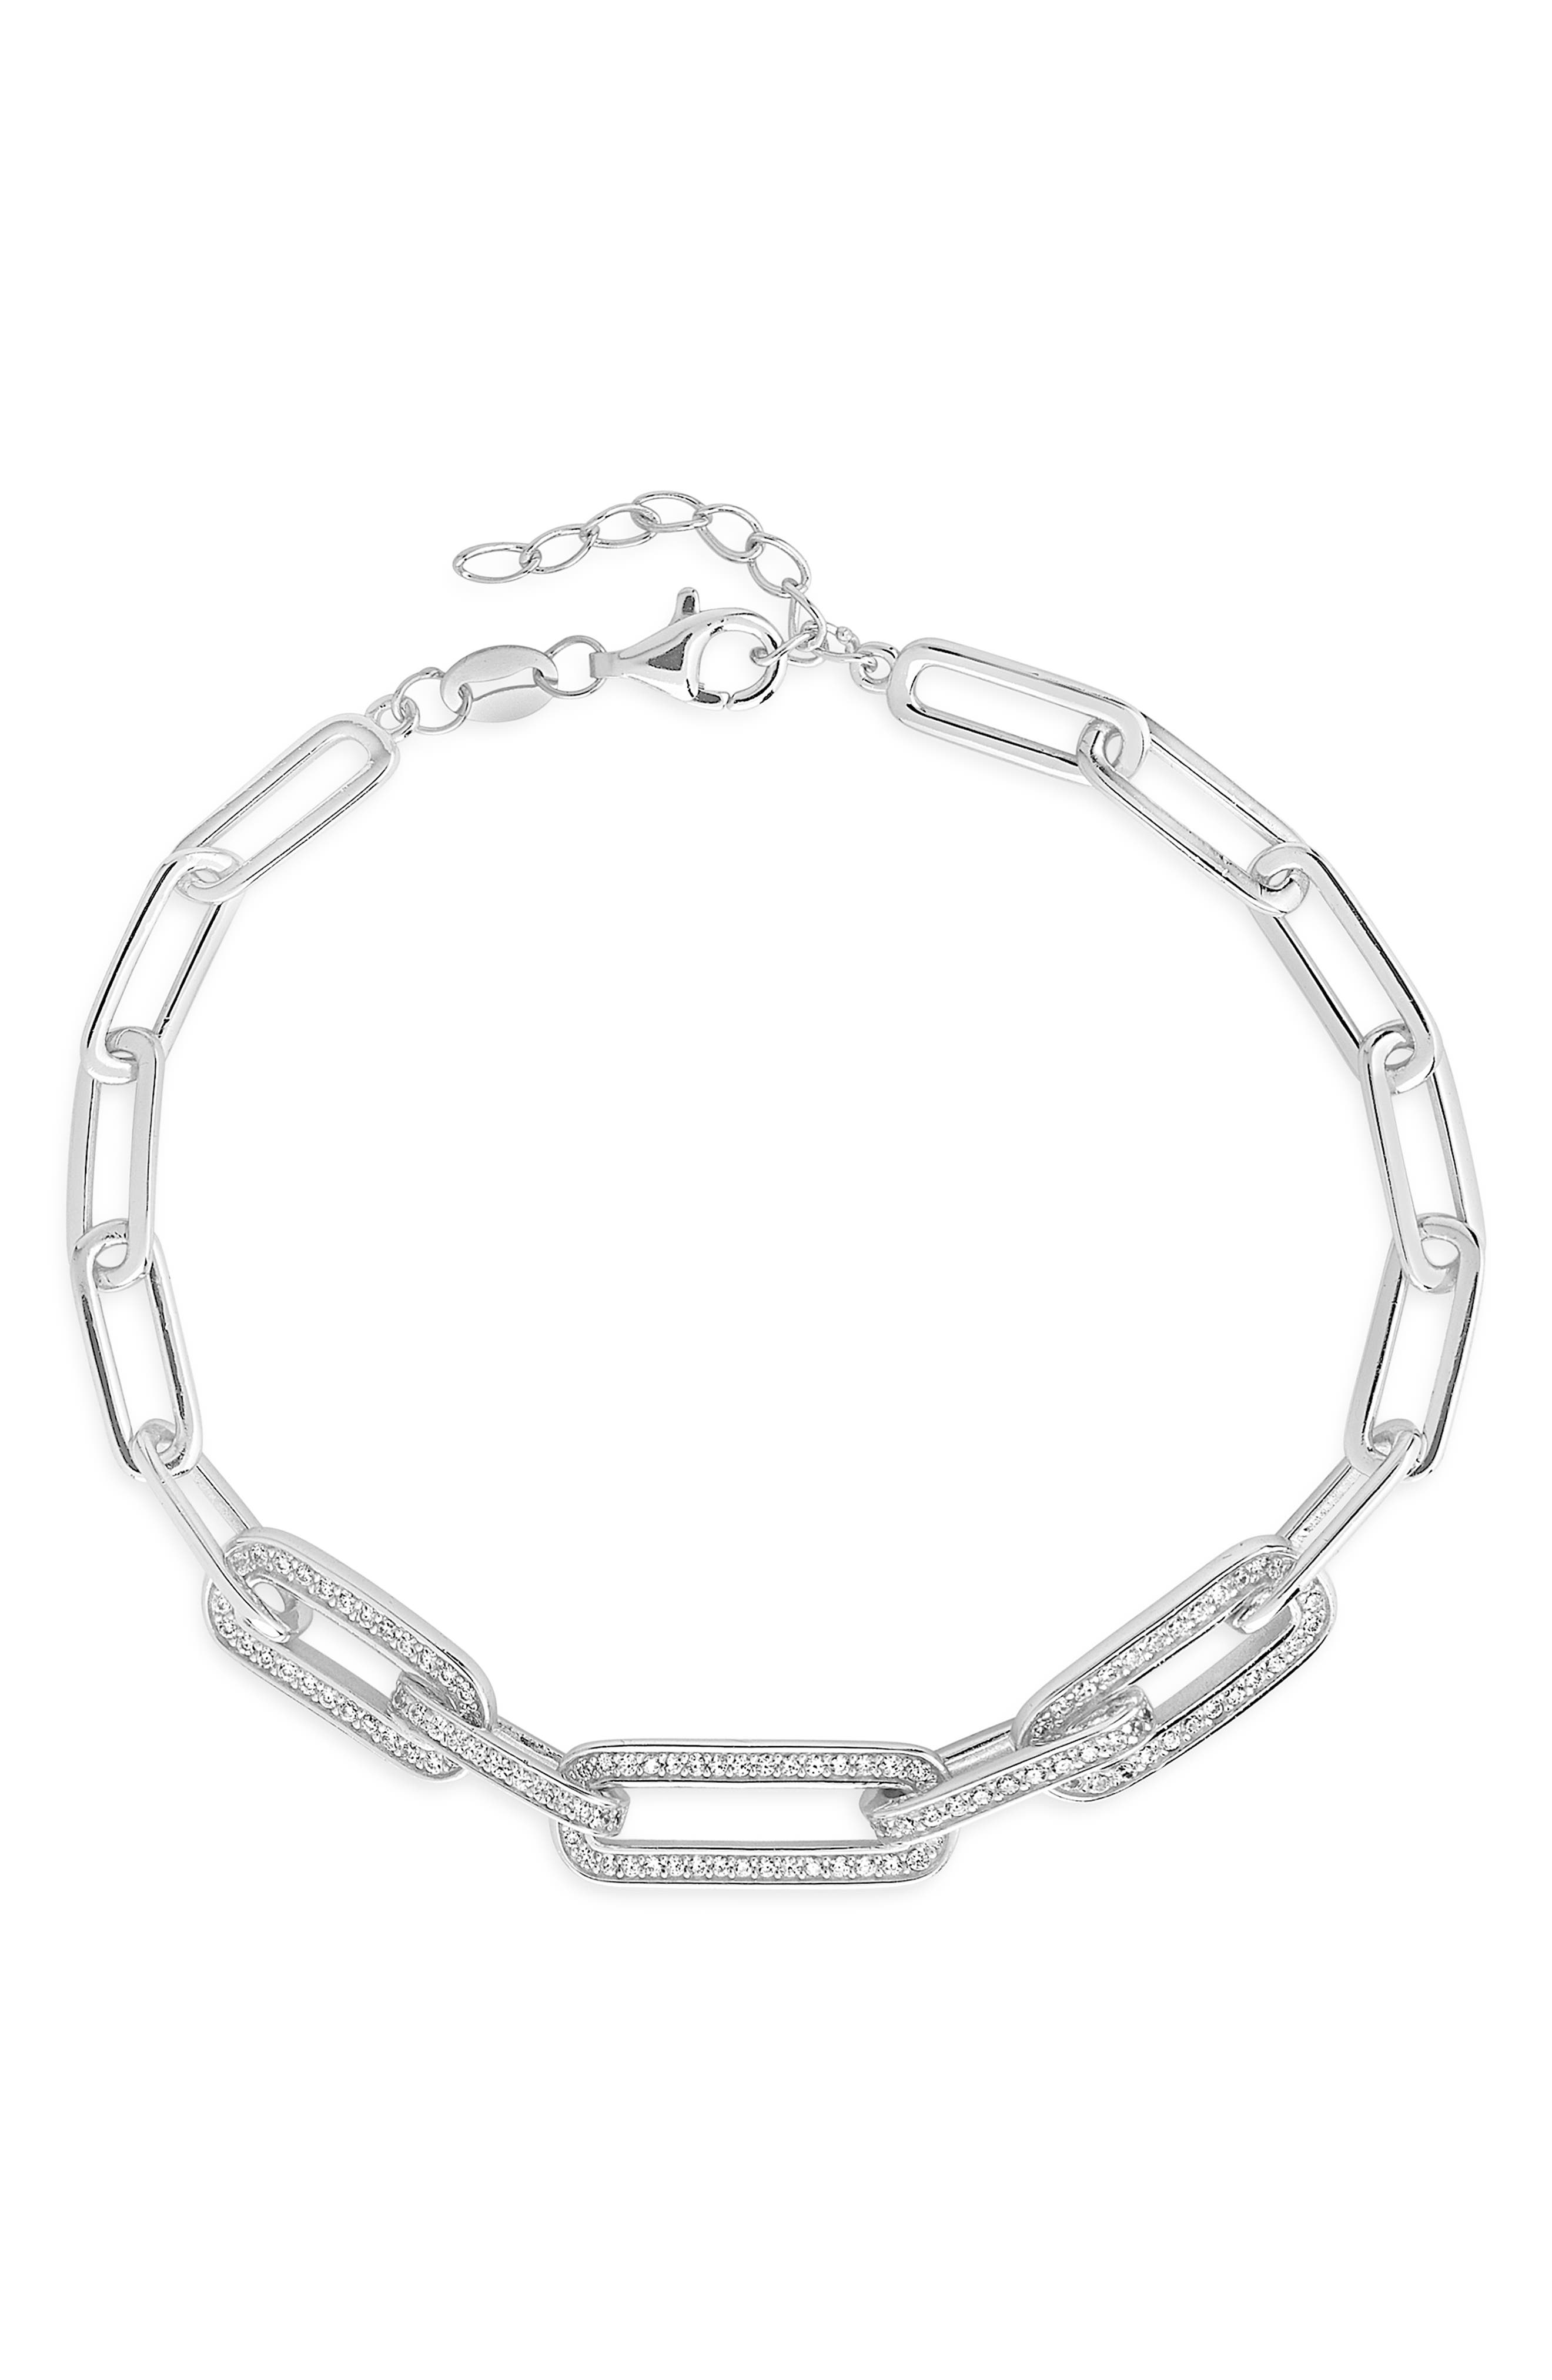 In this modern bracelet, a trio of links is set with glittering cubic zironia to showcase the sparkle right out front. Style Name: Sterling Forever Cubic Zirconia Long Link Bracelet. Style Number: 6114369. Available in stores.